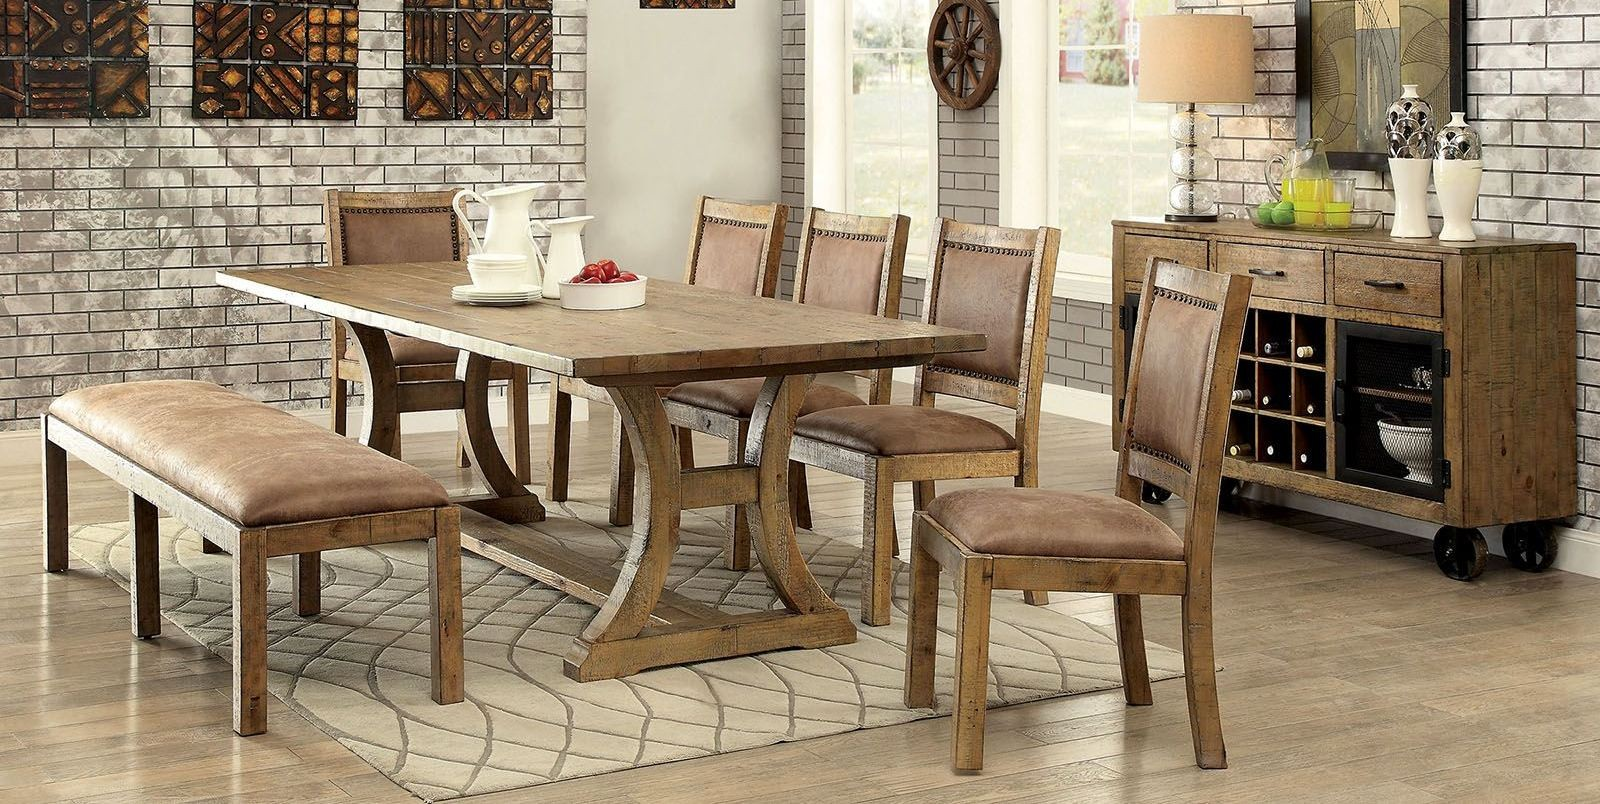 Gianna Rustic Pine Extendable Rectangular Dining Room Set  : cm3829t1 from colemanfurniture.com size 1600 x 804 jpeg 421kB